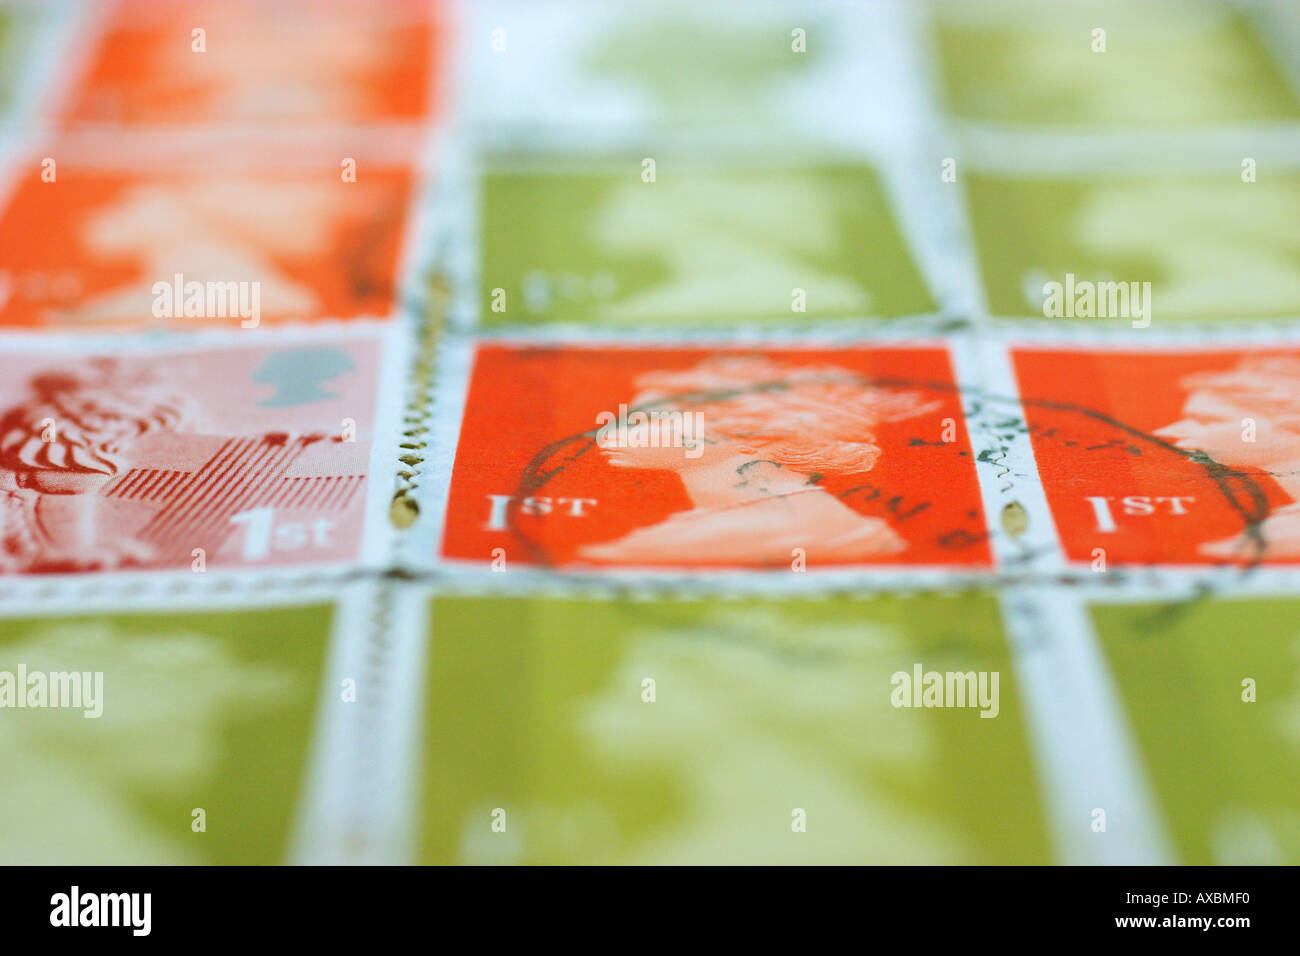 Low angle view of a set of used 1st class stamps - Stock Image